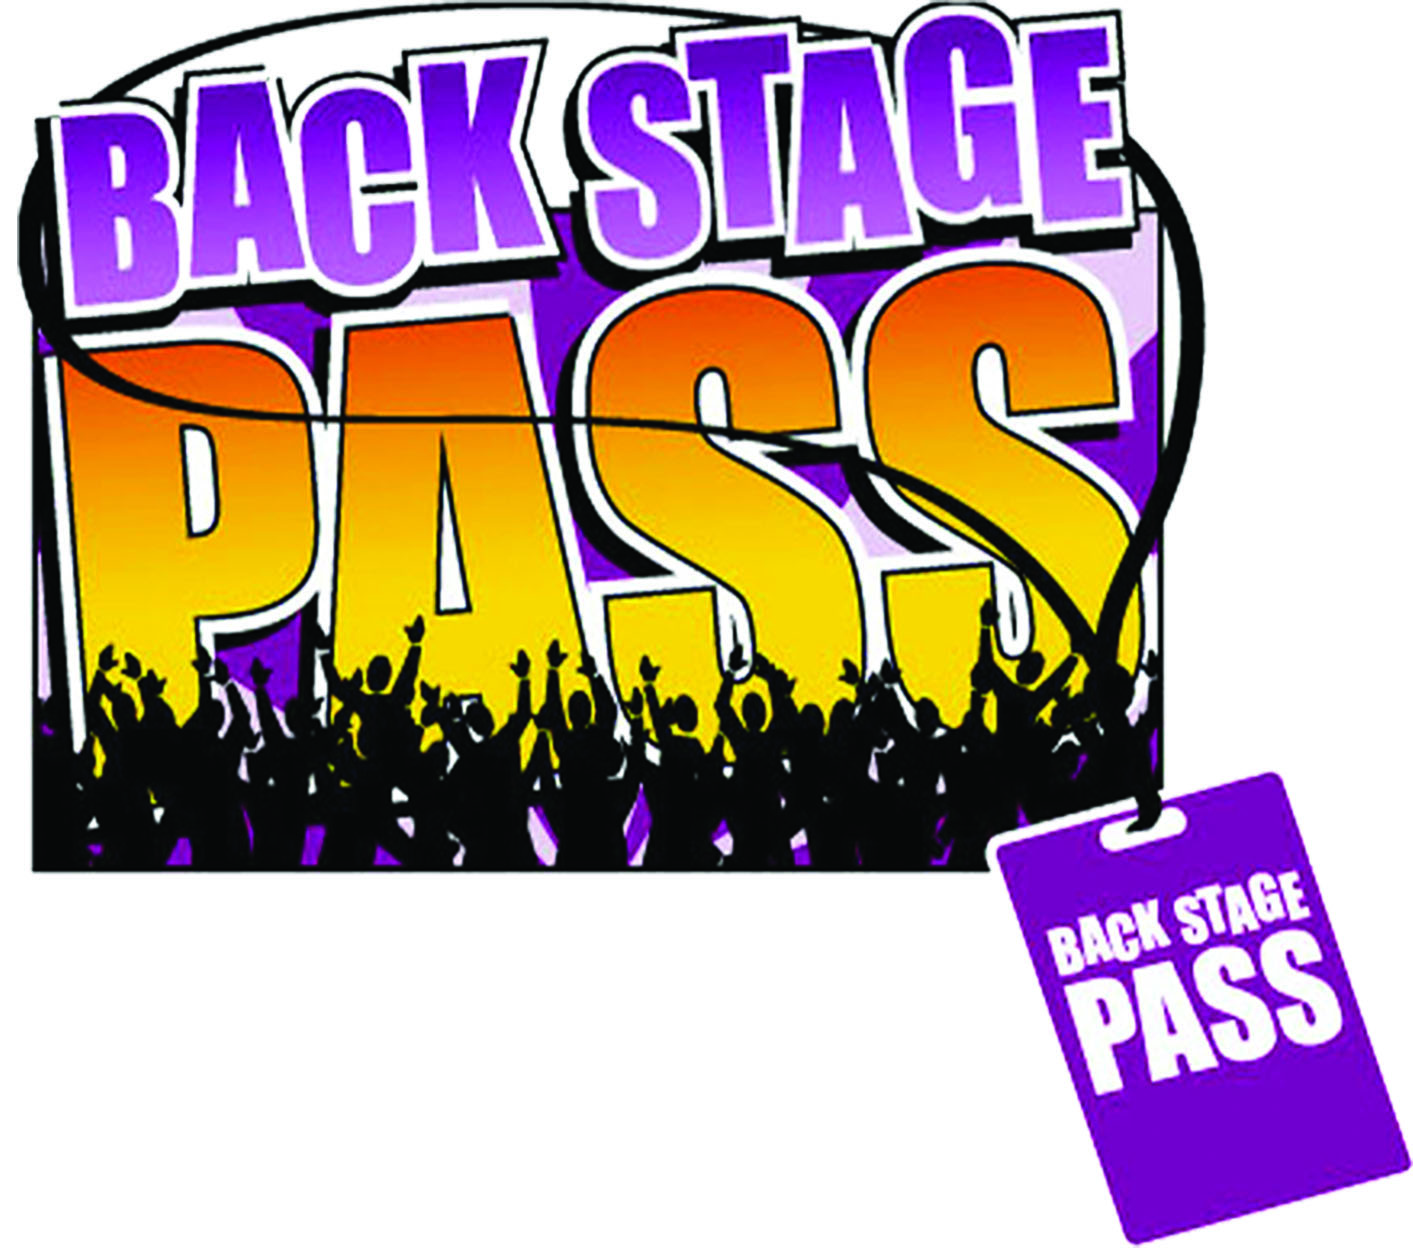 Backstage Pass - Graphic with Crowd and Lanyard